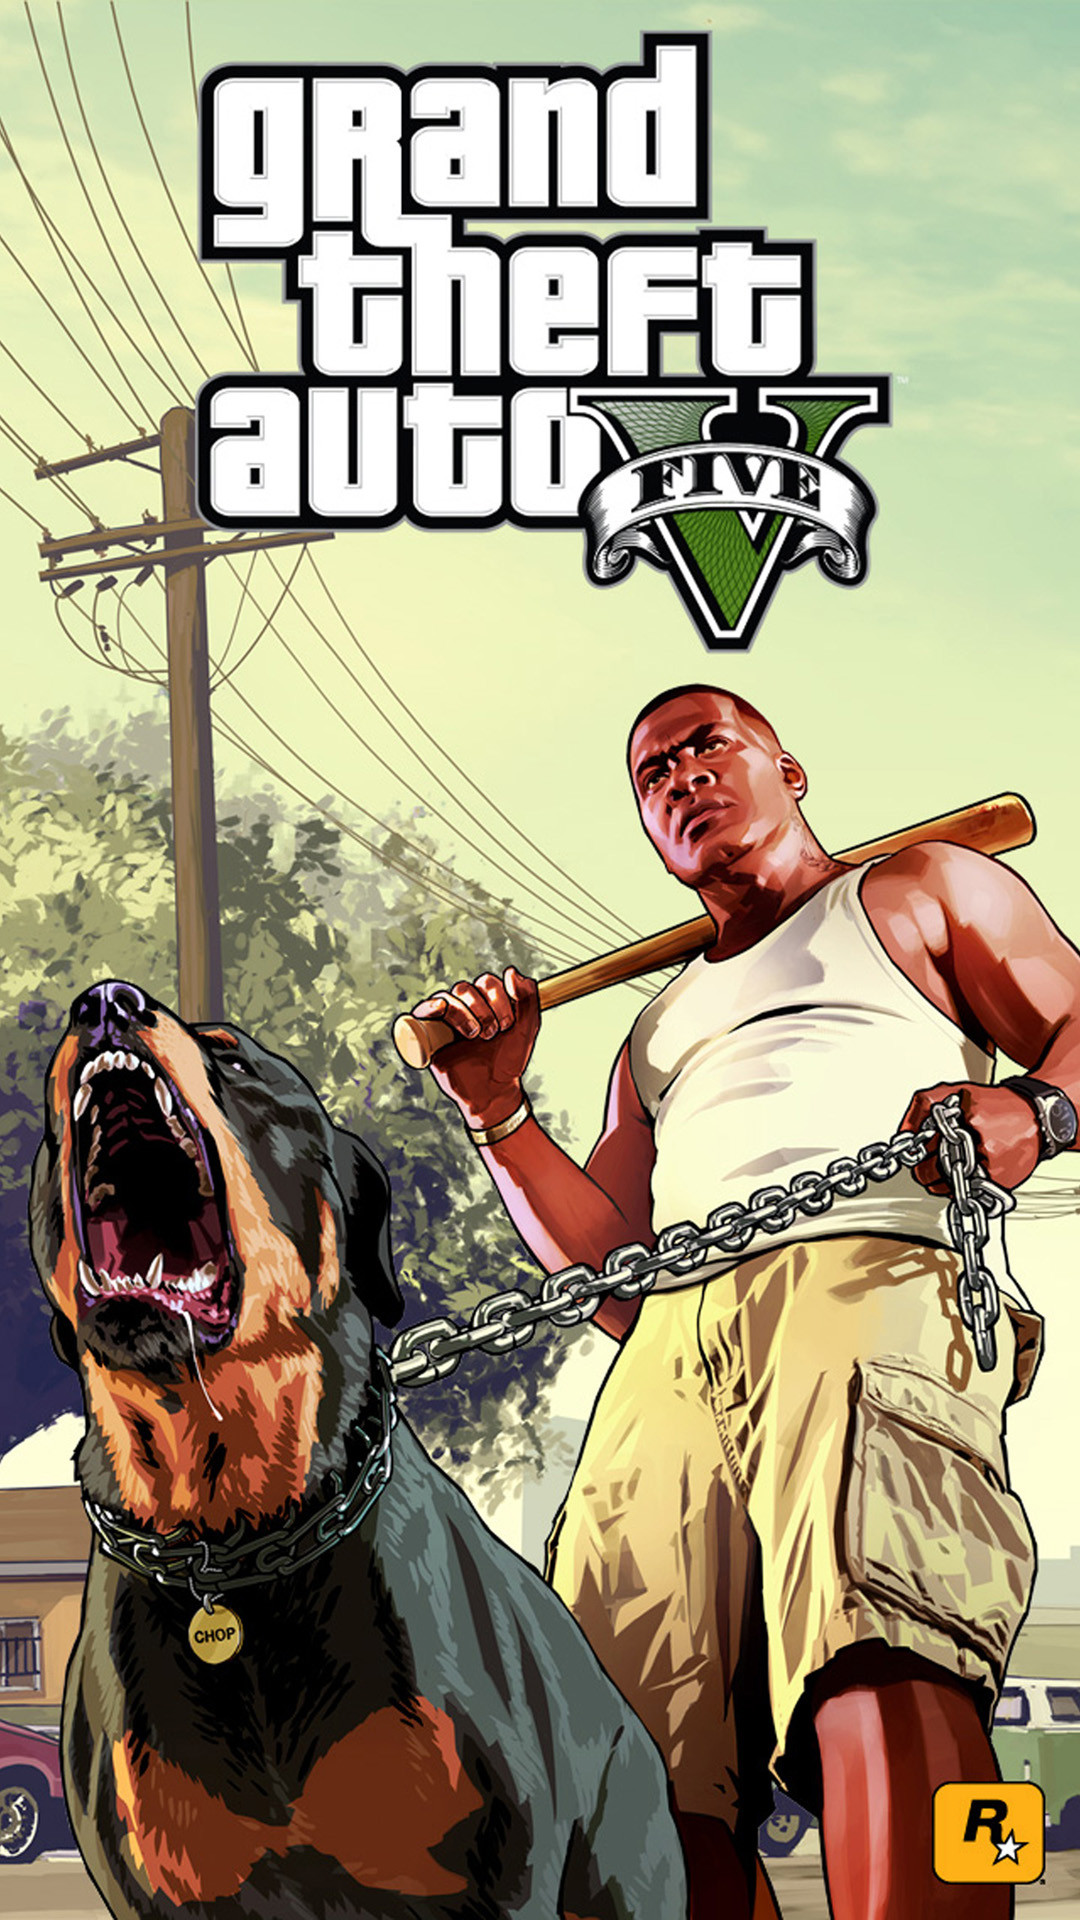 Gta 5 live wallpapers 70 images - Gta v wallpaper ...